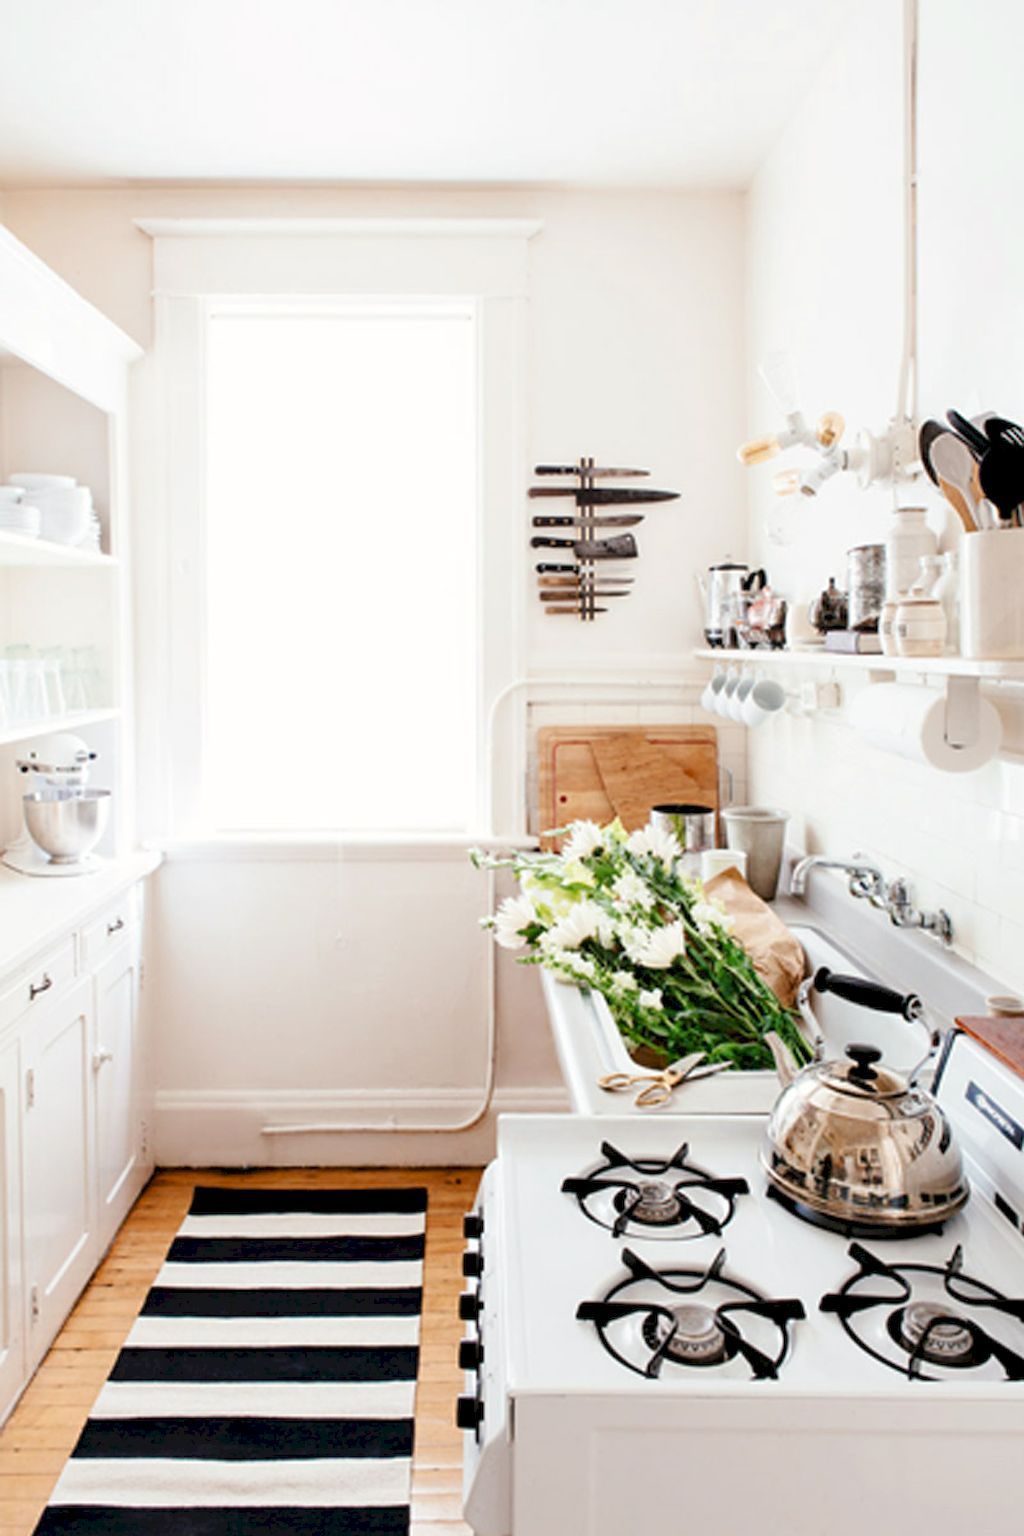 Small Kitchen Decorating Ideas For Apartment Part - 34: Gorgeous 80 Small Apartment Kitchen Decorating Ideas  Https://crowdecor.com/80